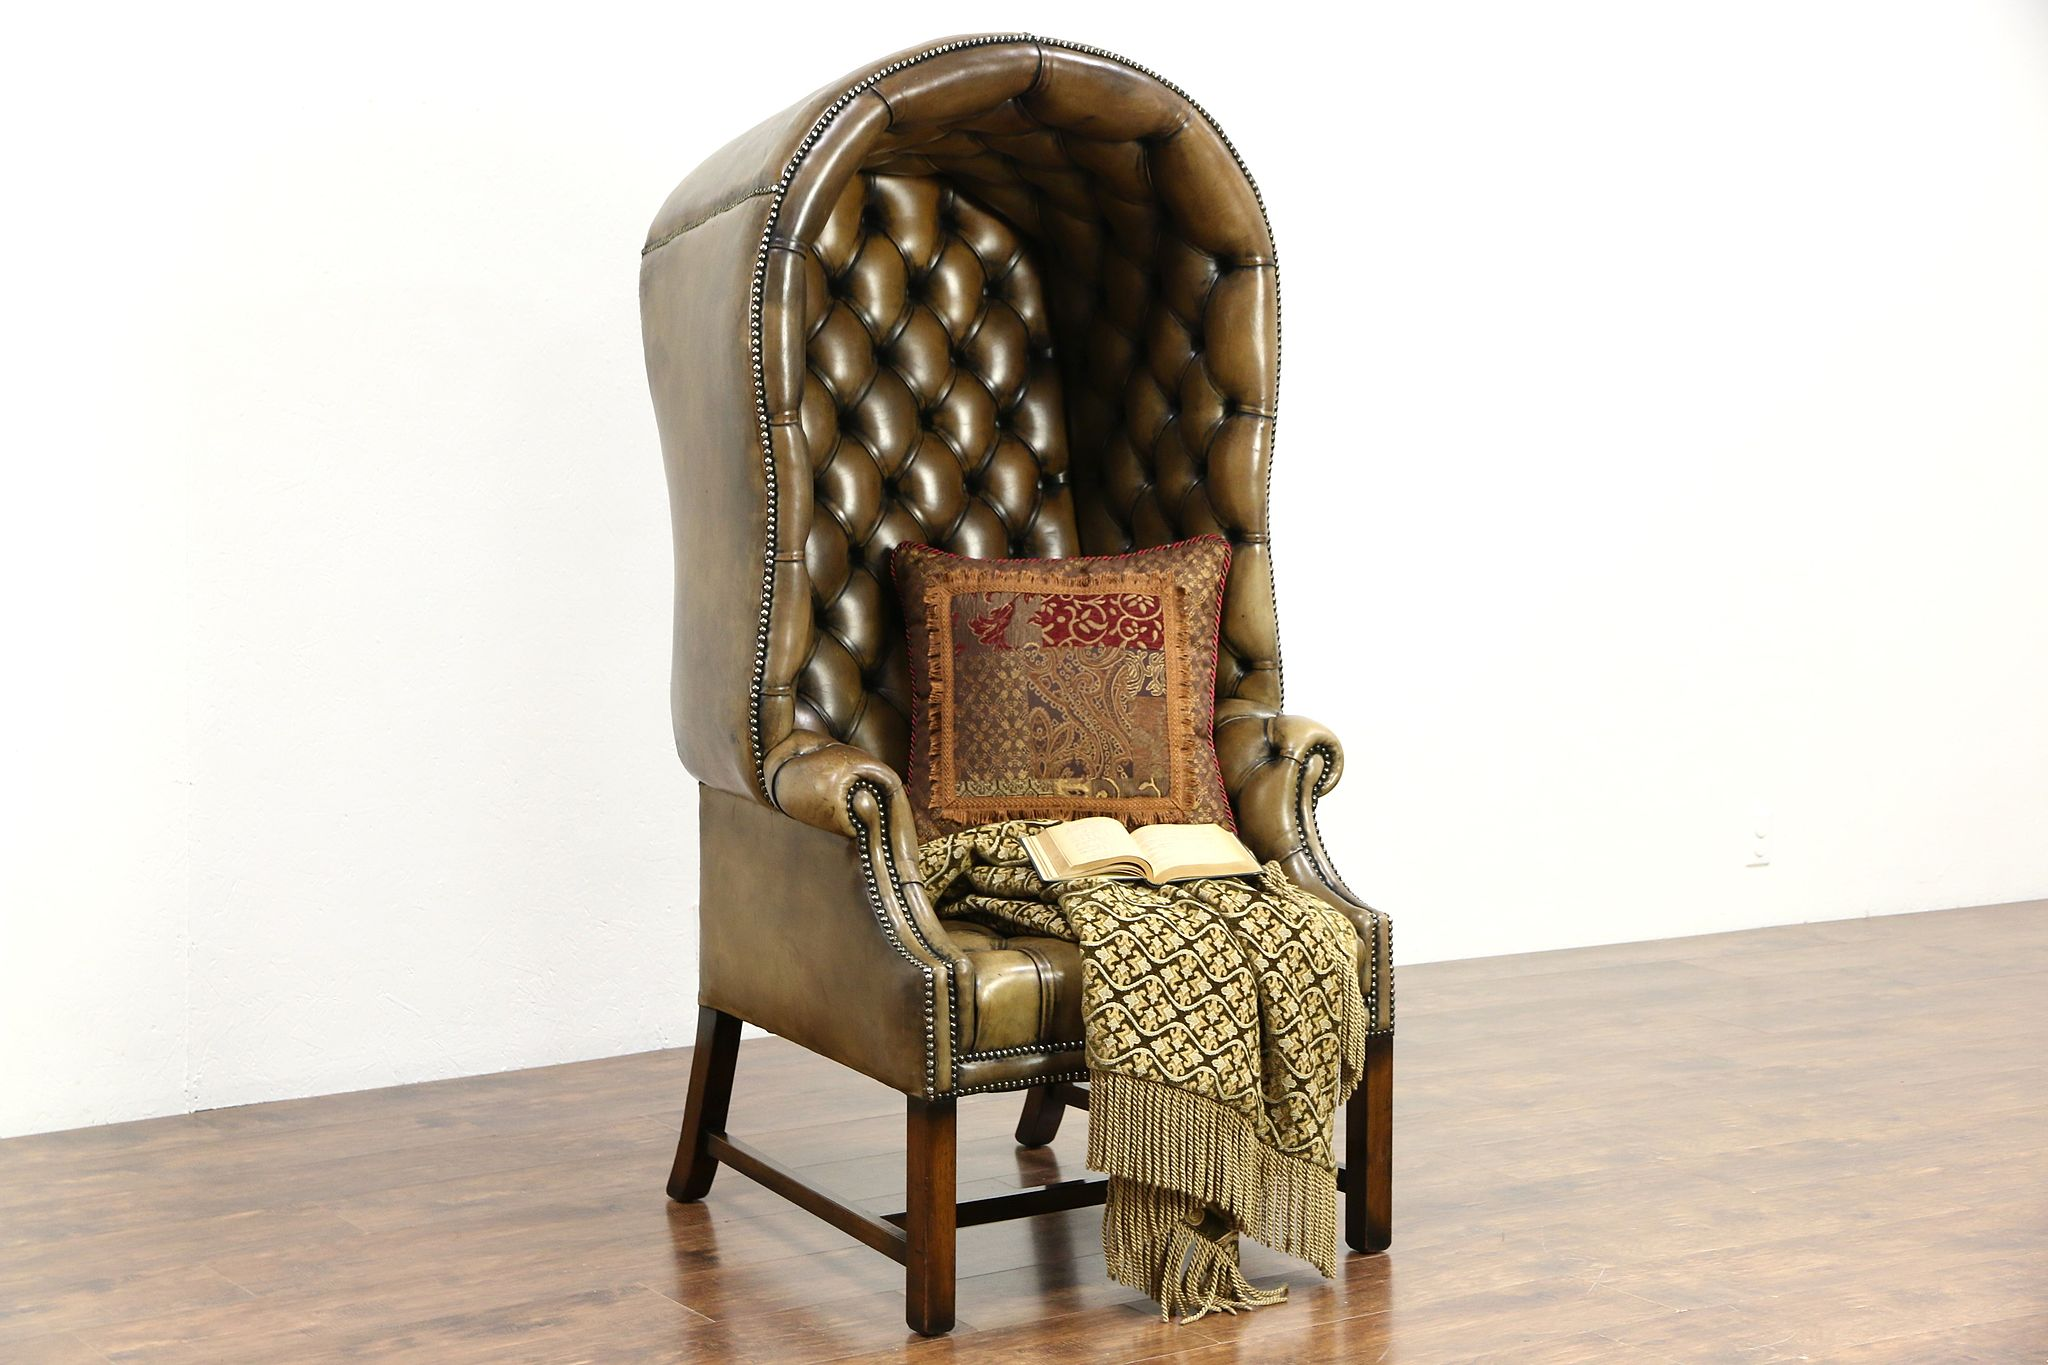 Delicieux English Style Vintage Hall Porter Chair With Hood U0026 Arms, Tufted Leather